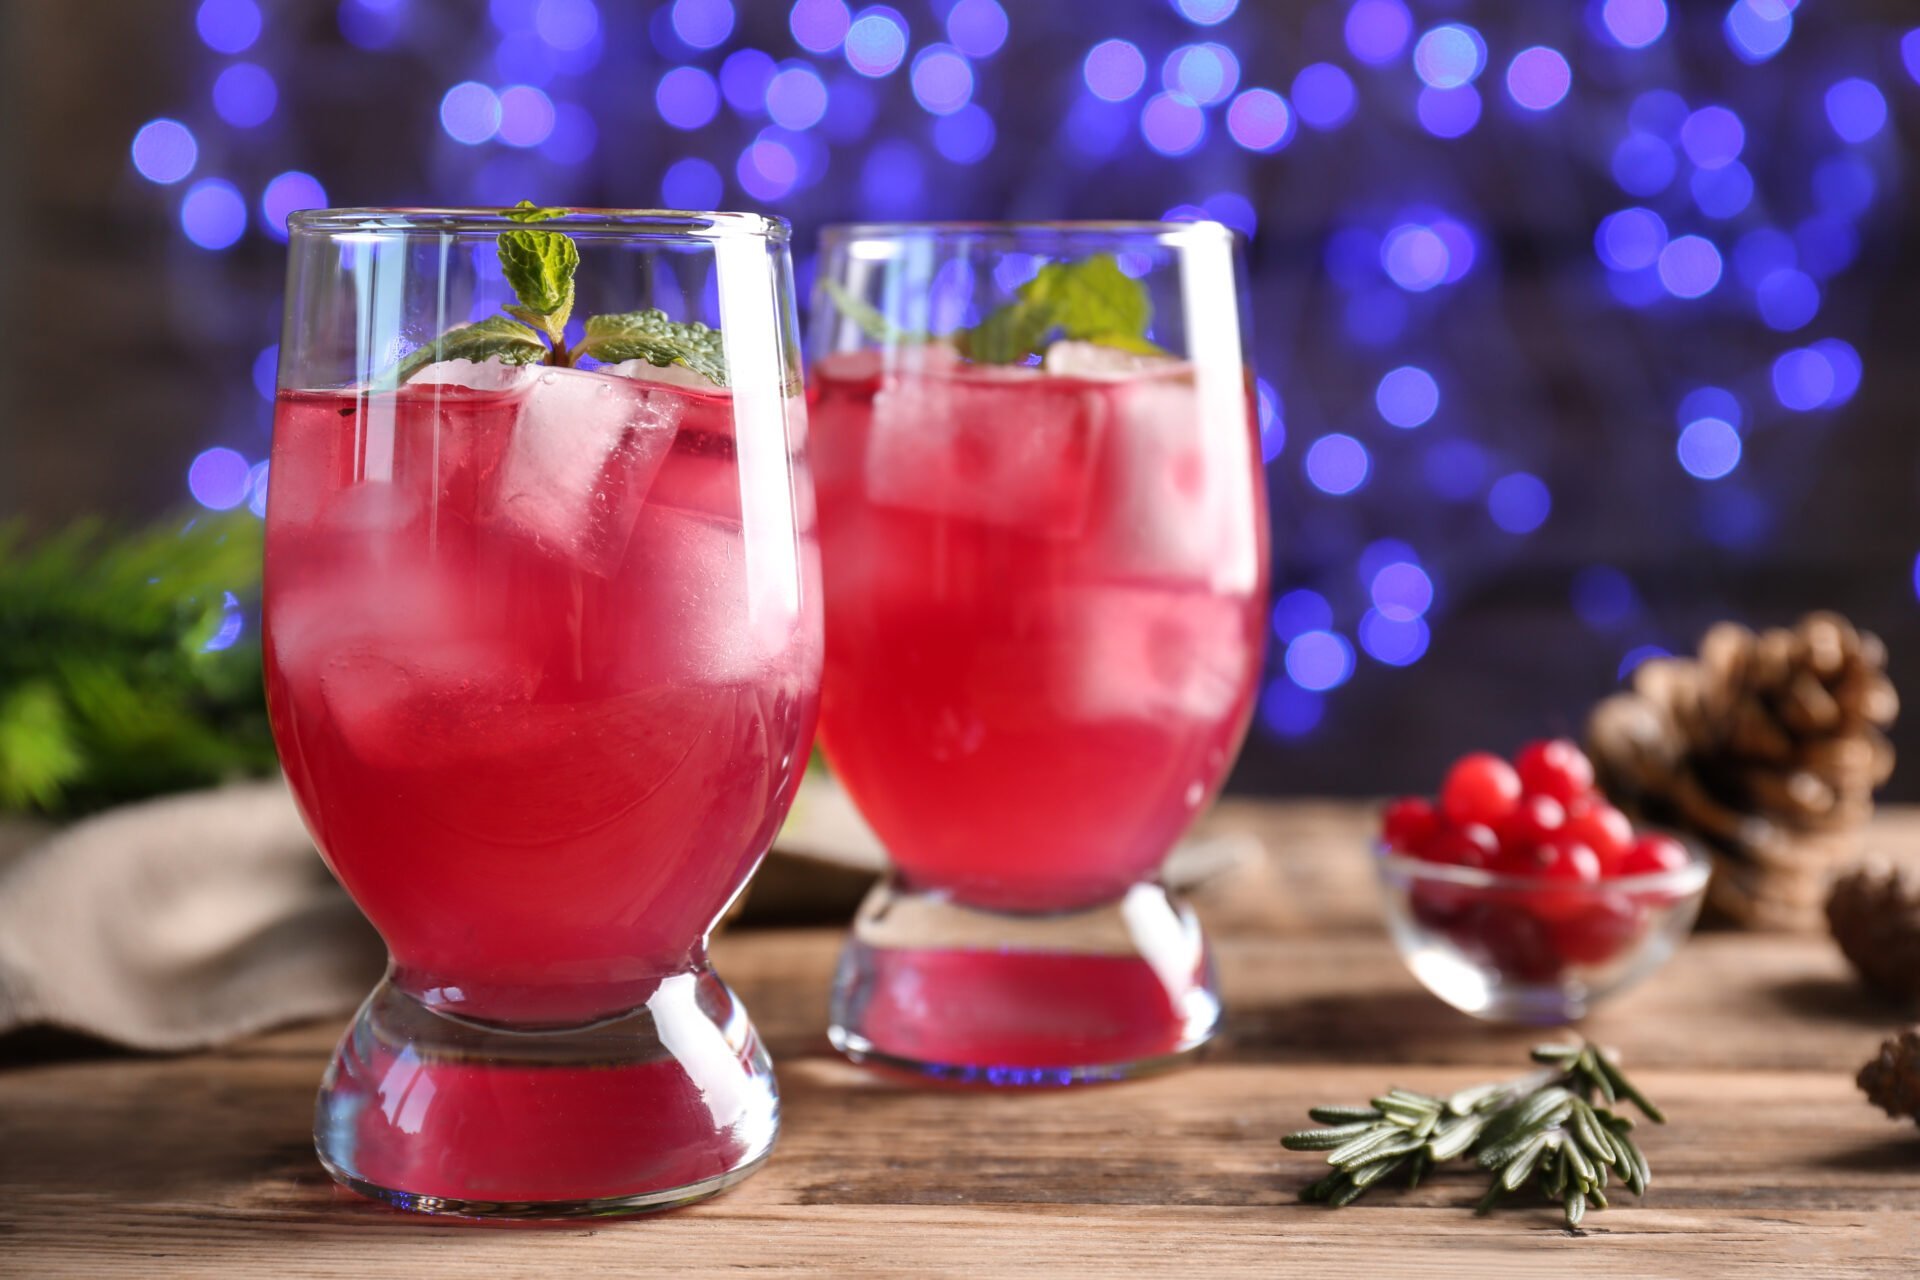 Glasses of delicious wine spritzer on blurred lights